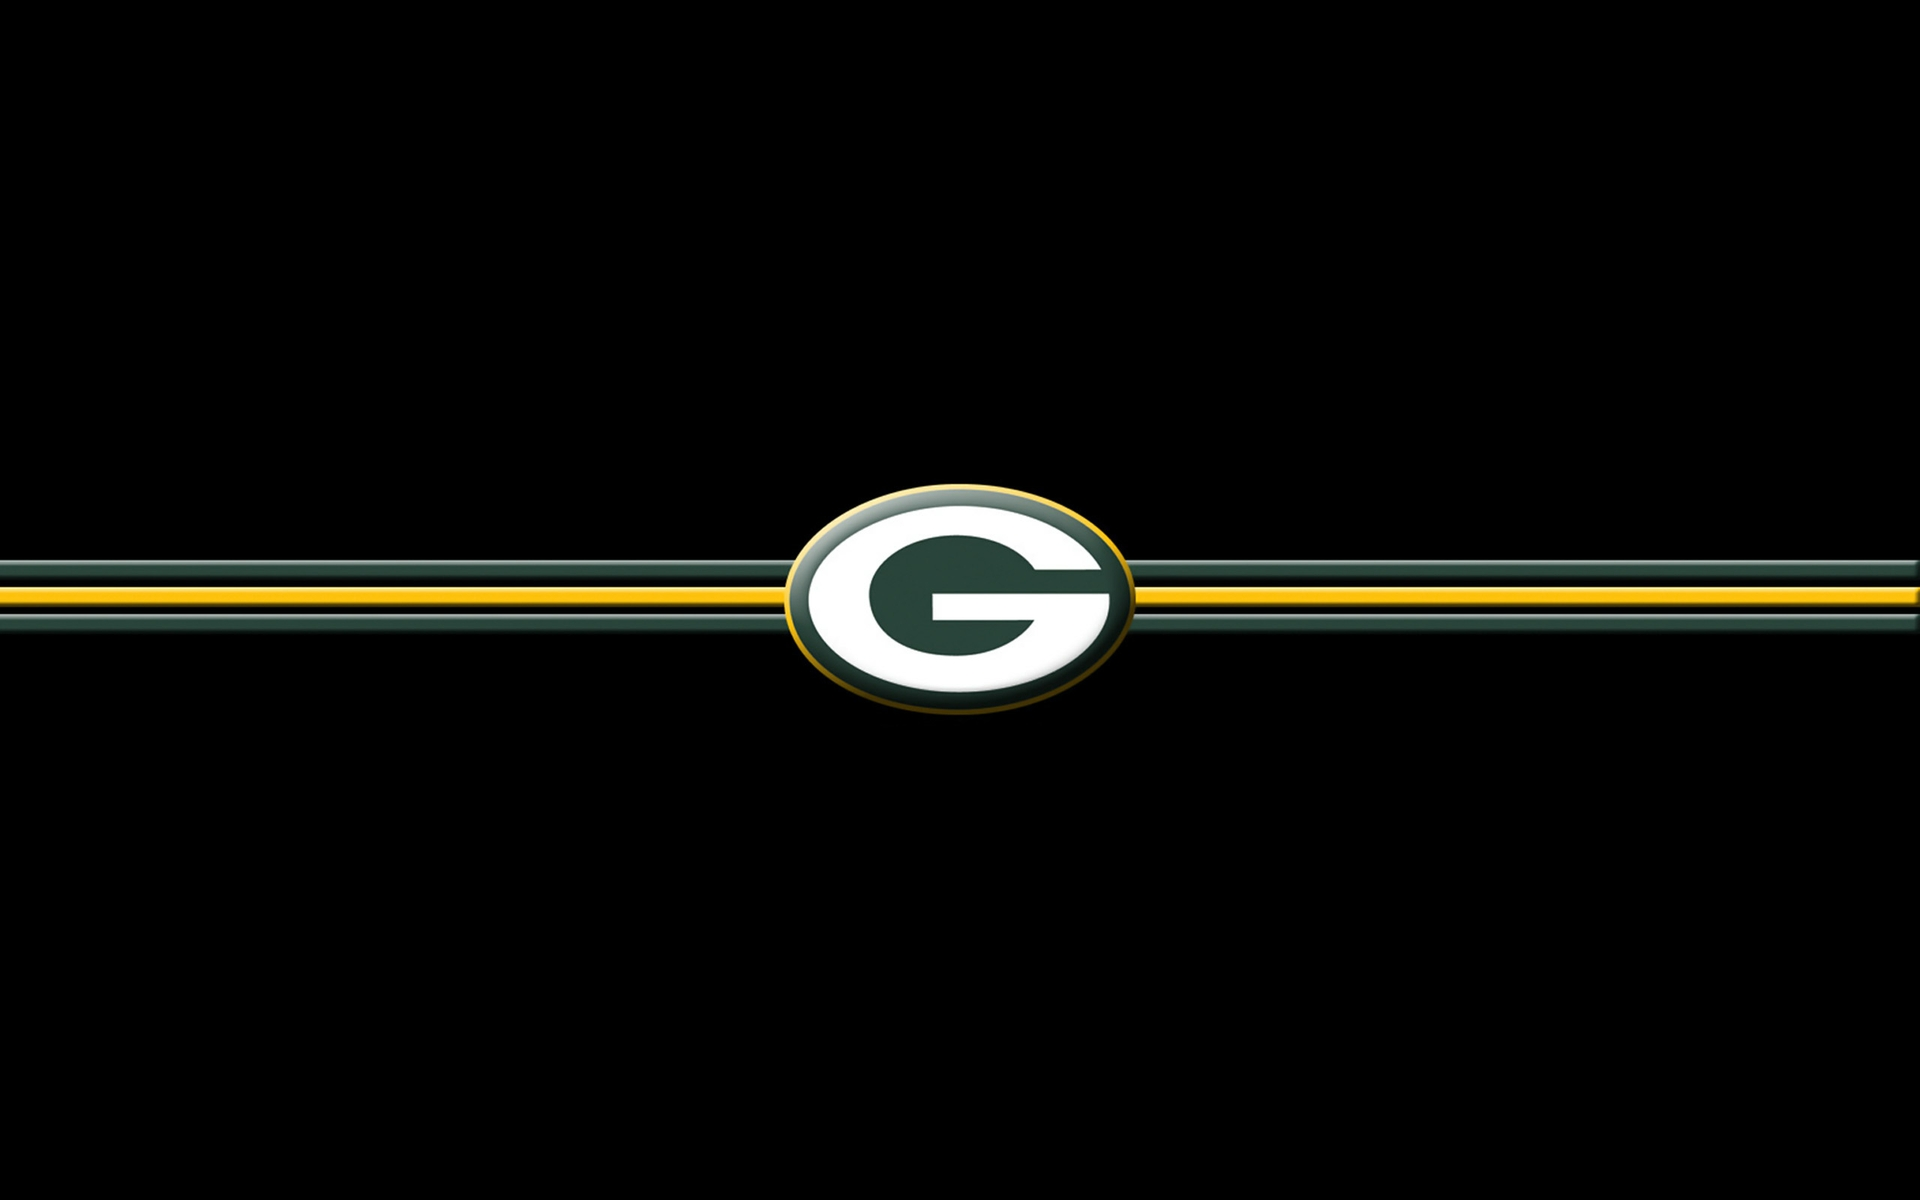 Green Bay Packer Wallpaper: 10 HD Green Bay Packers Wallpapers